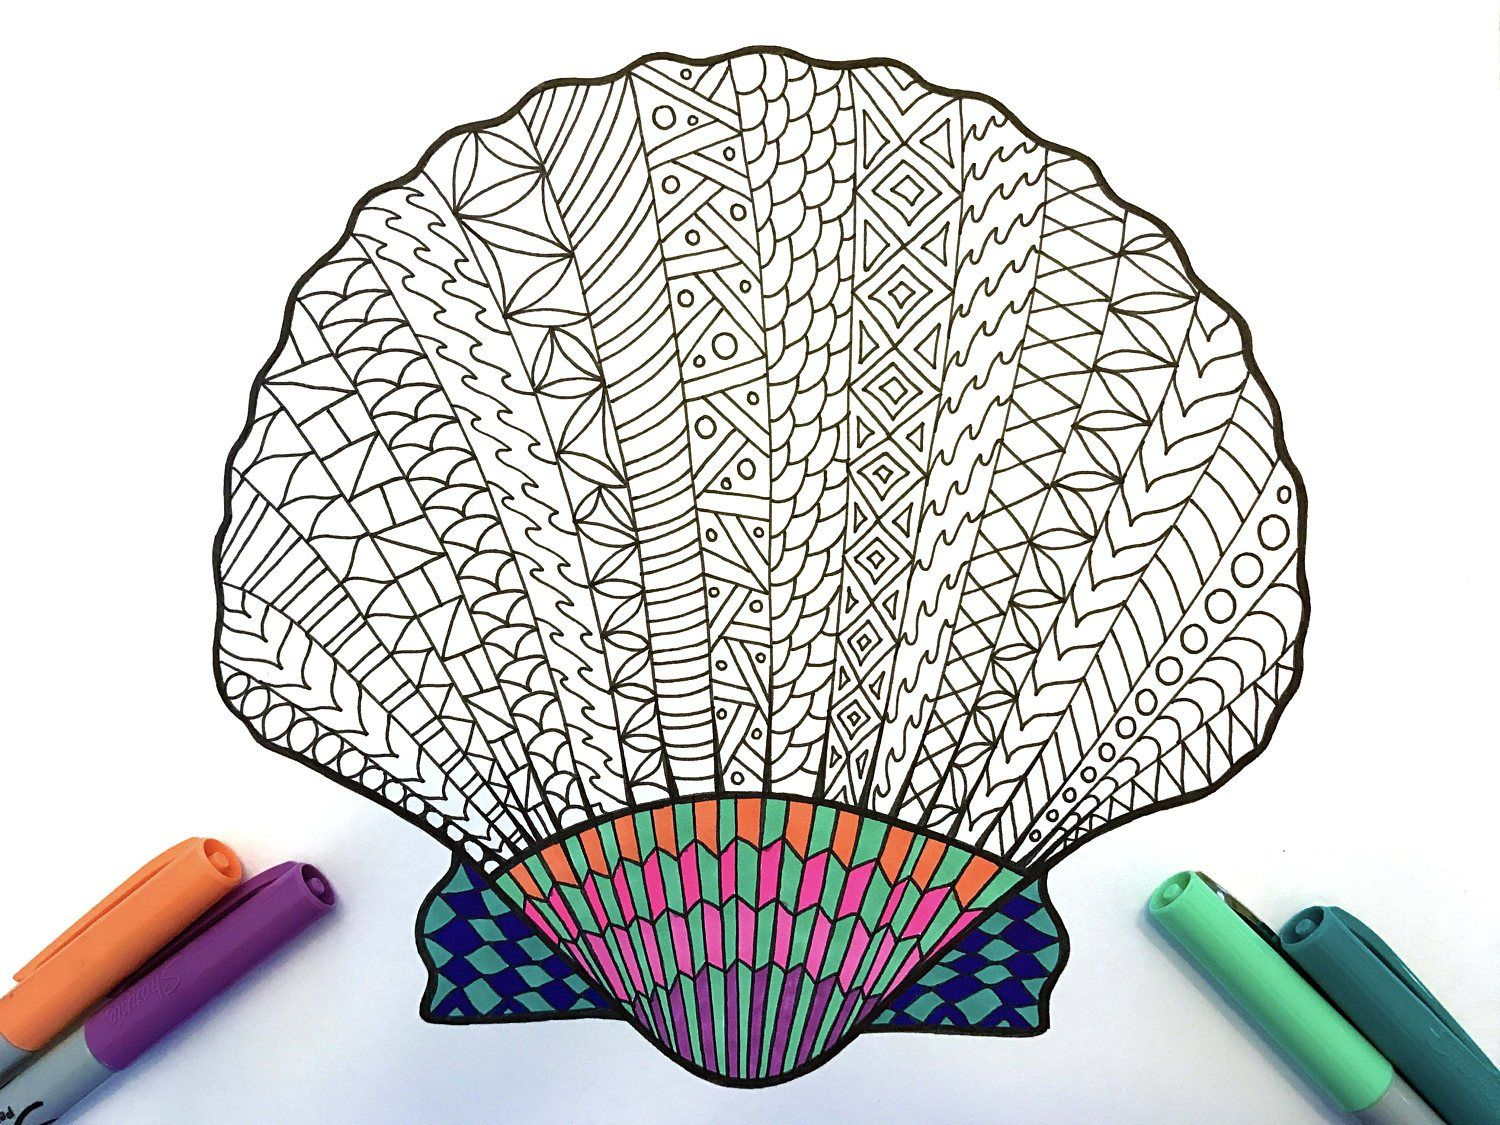 Clam Shell Pdf Zentangle Coloring Page Scribble Stitch Coloring Pages Color Pencil Drawing Drawings